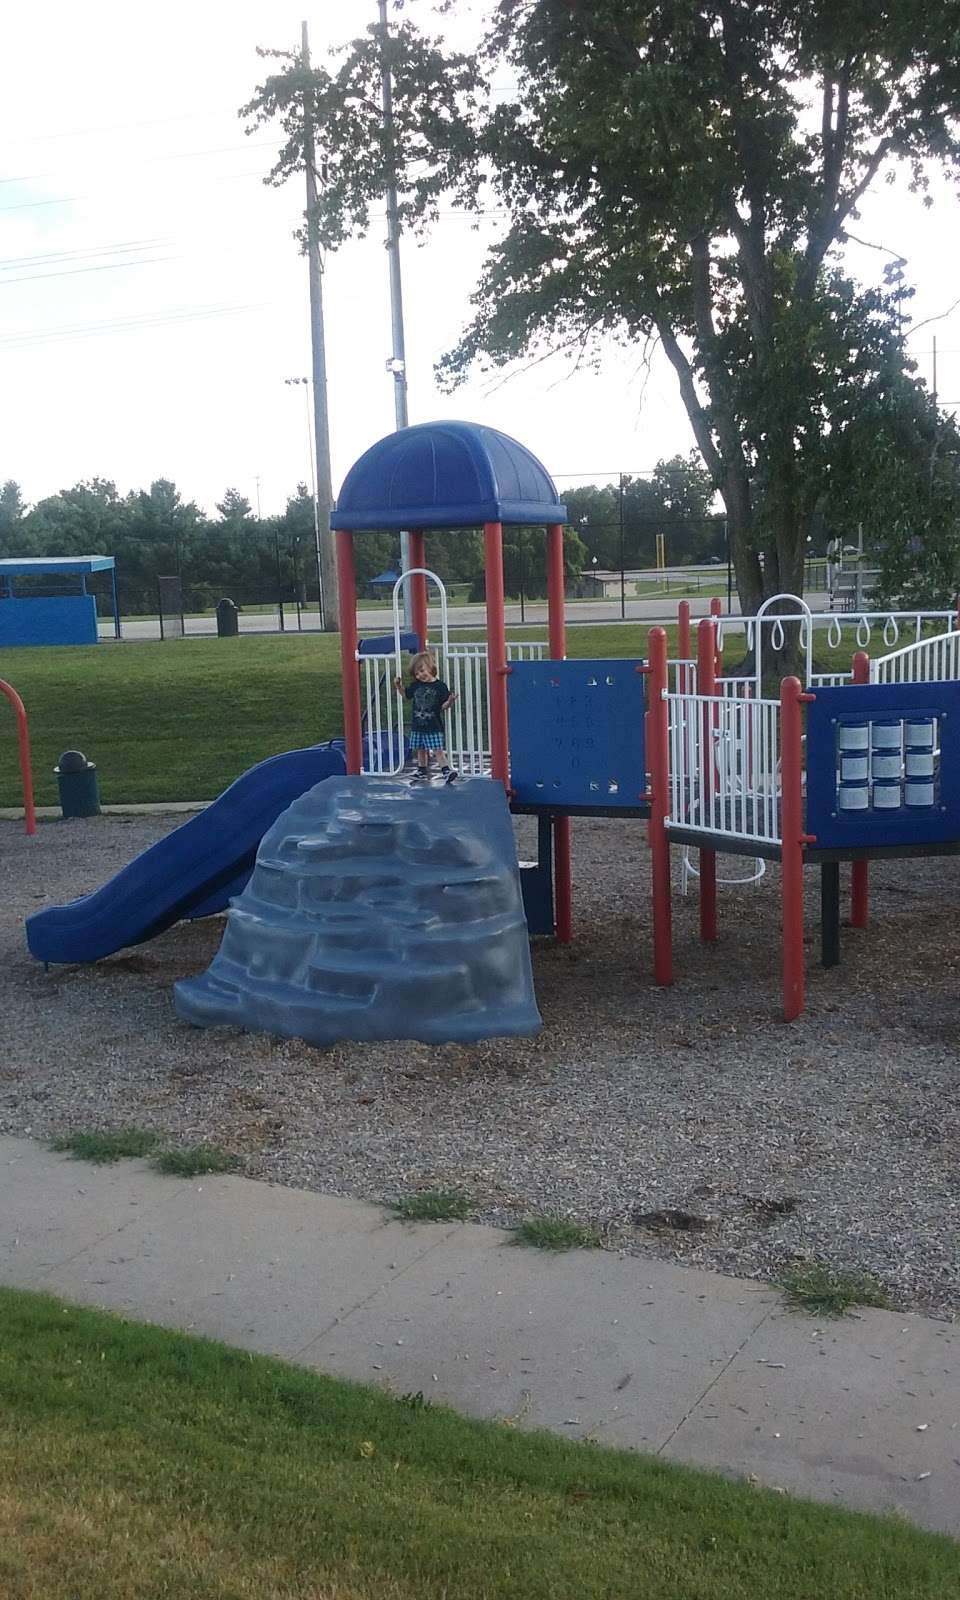 Mill Creek Park Baseball Field - park  | Photo 7 of 10 | Address: Independence, MO 64050, USA | Phone: (816) 325-7843